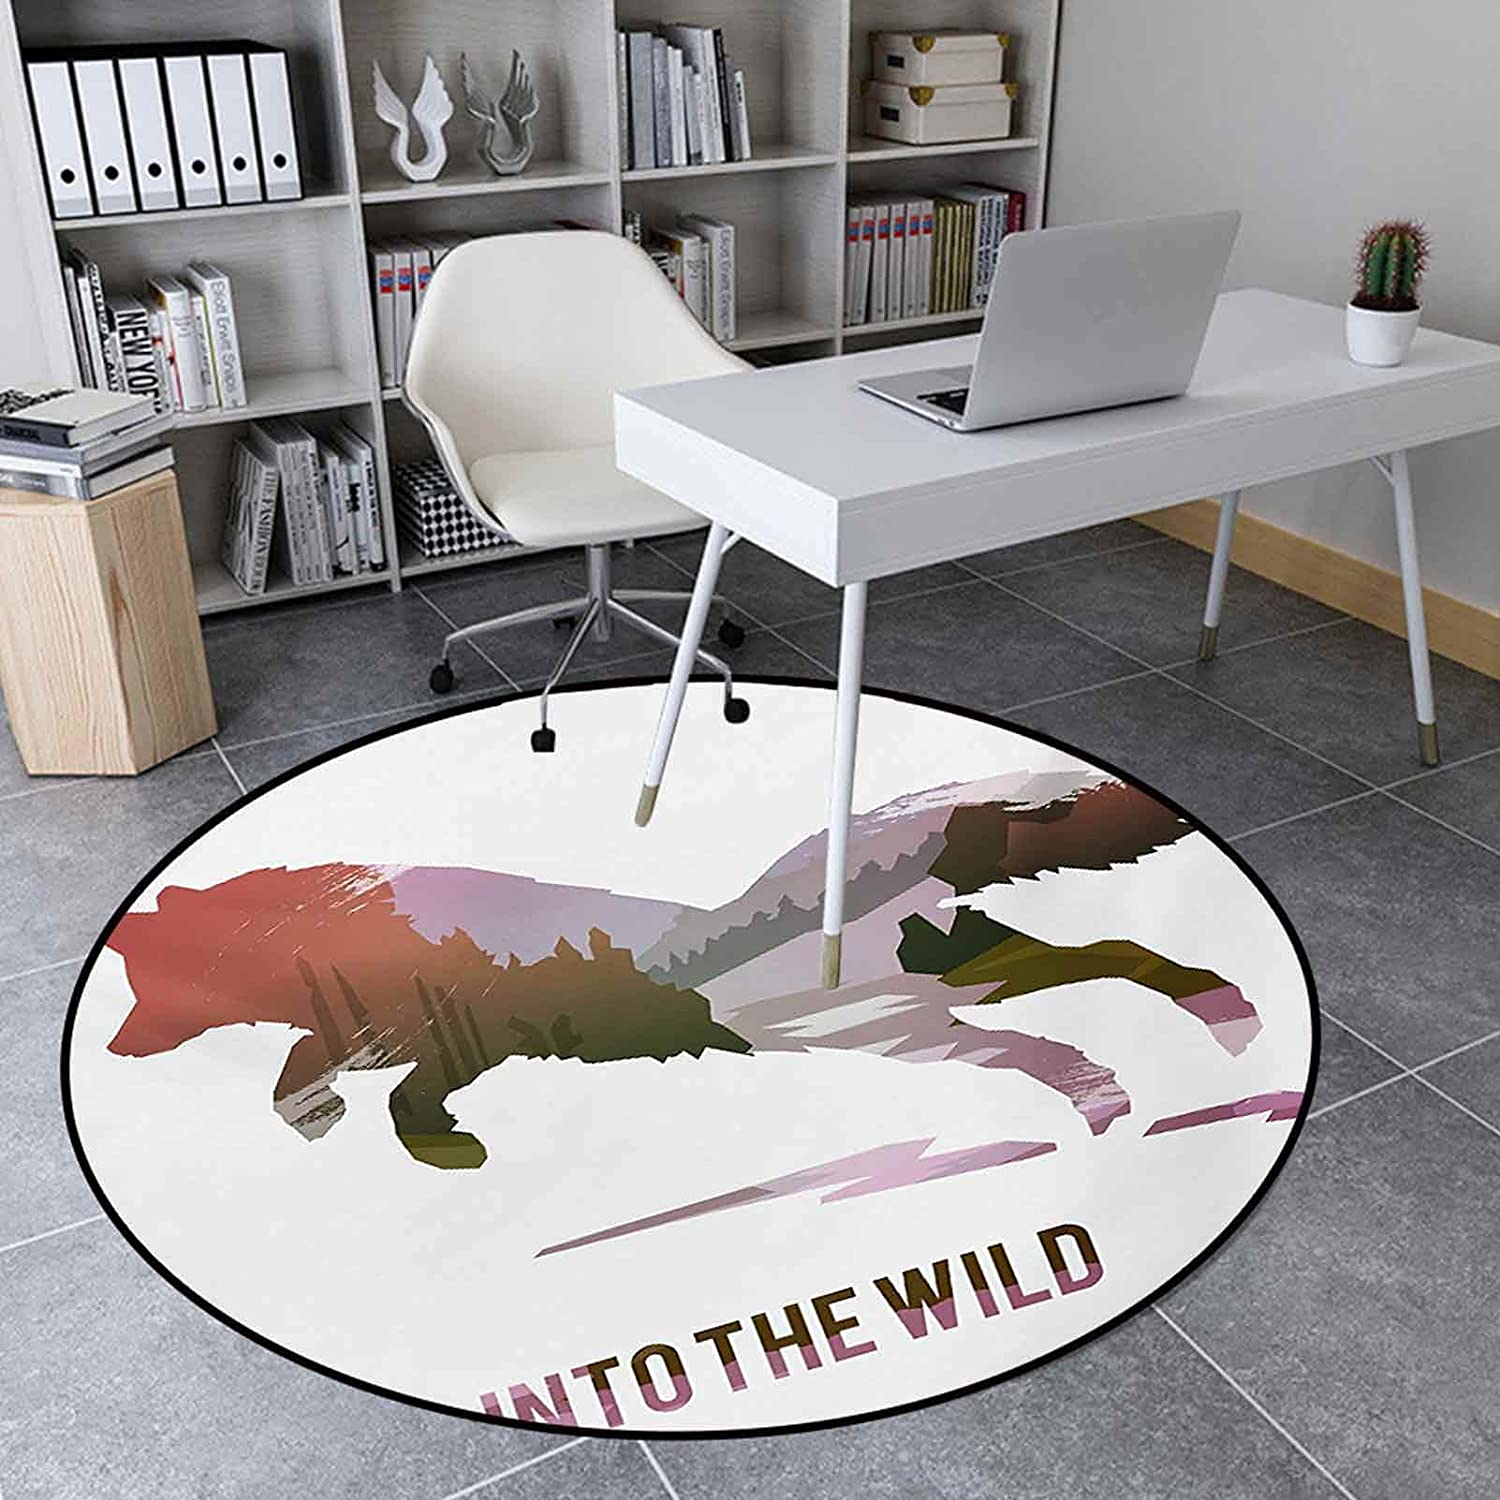 Round Area Rugs 3.3 Ft Max 65% OFF Indoor Room Jumping Living Floor for Mat 2021 autumn and winter new